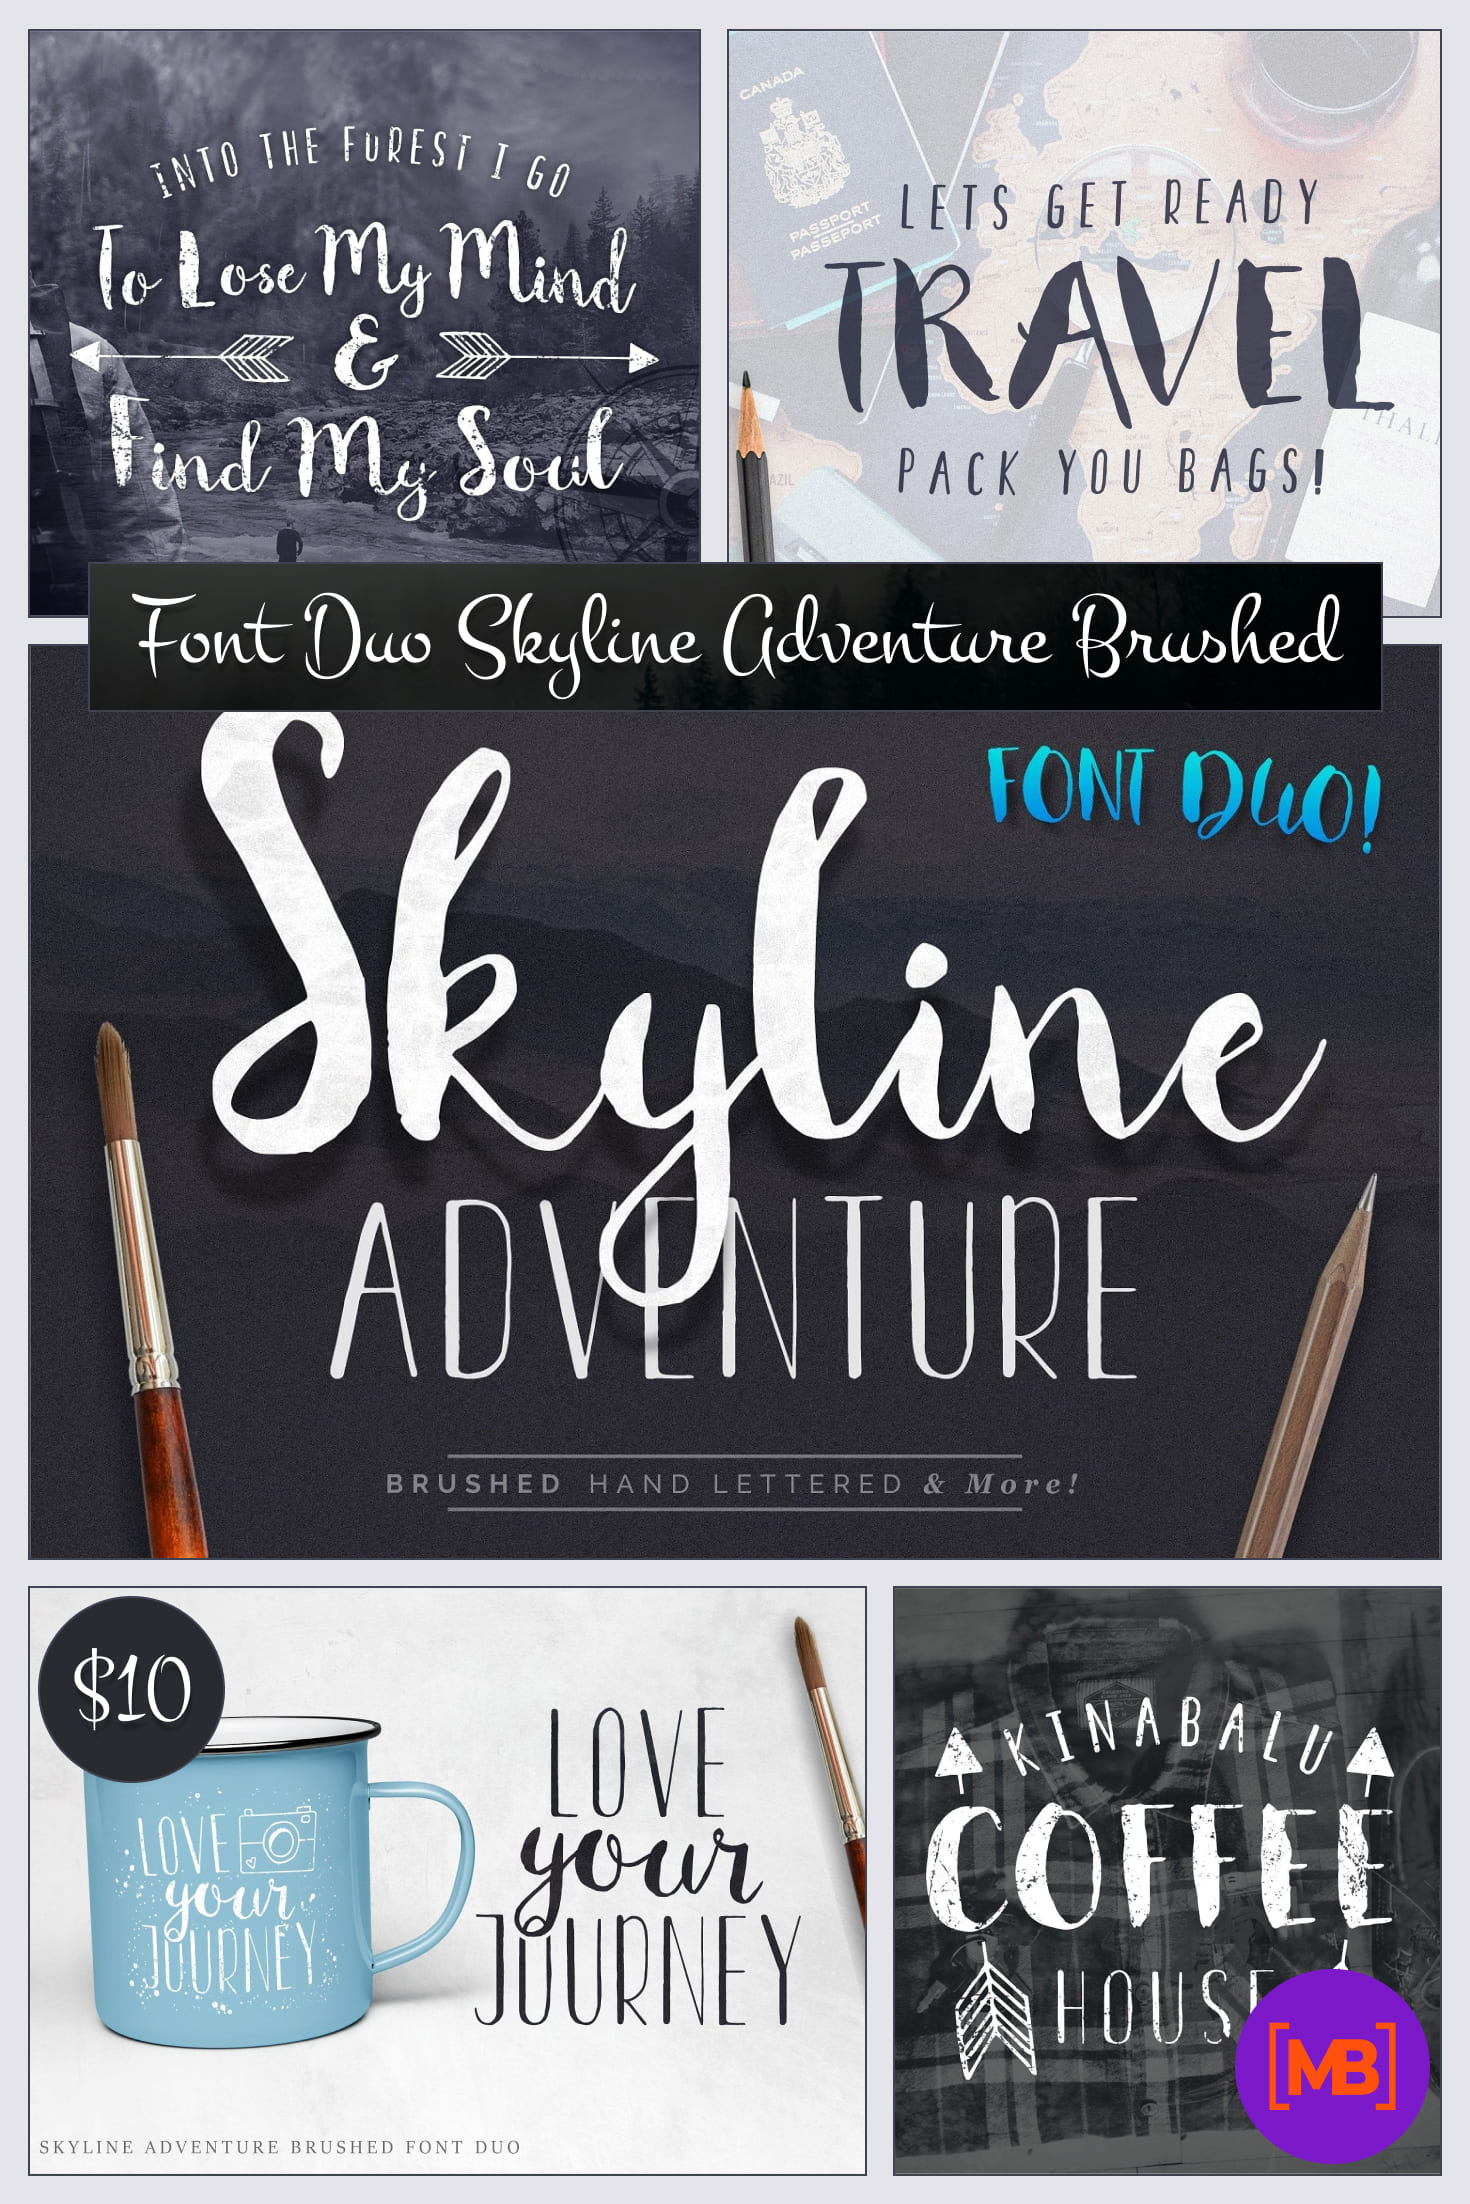 Font Duo Skyline Adventure Brushed + Vector Elements - $10. Collage Image.